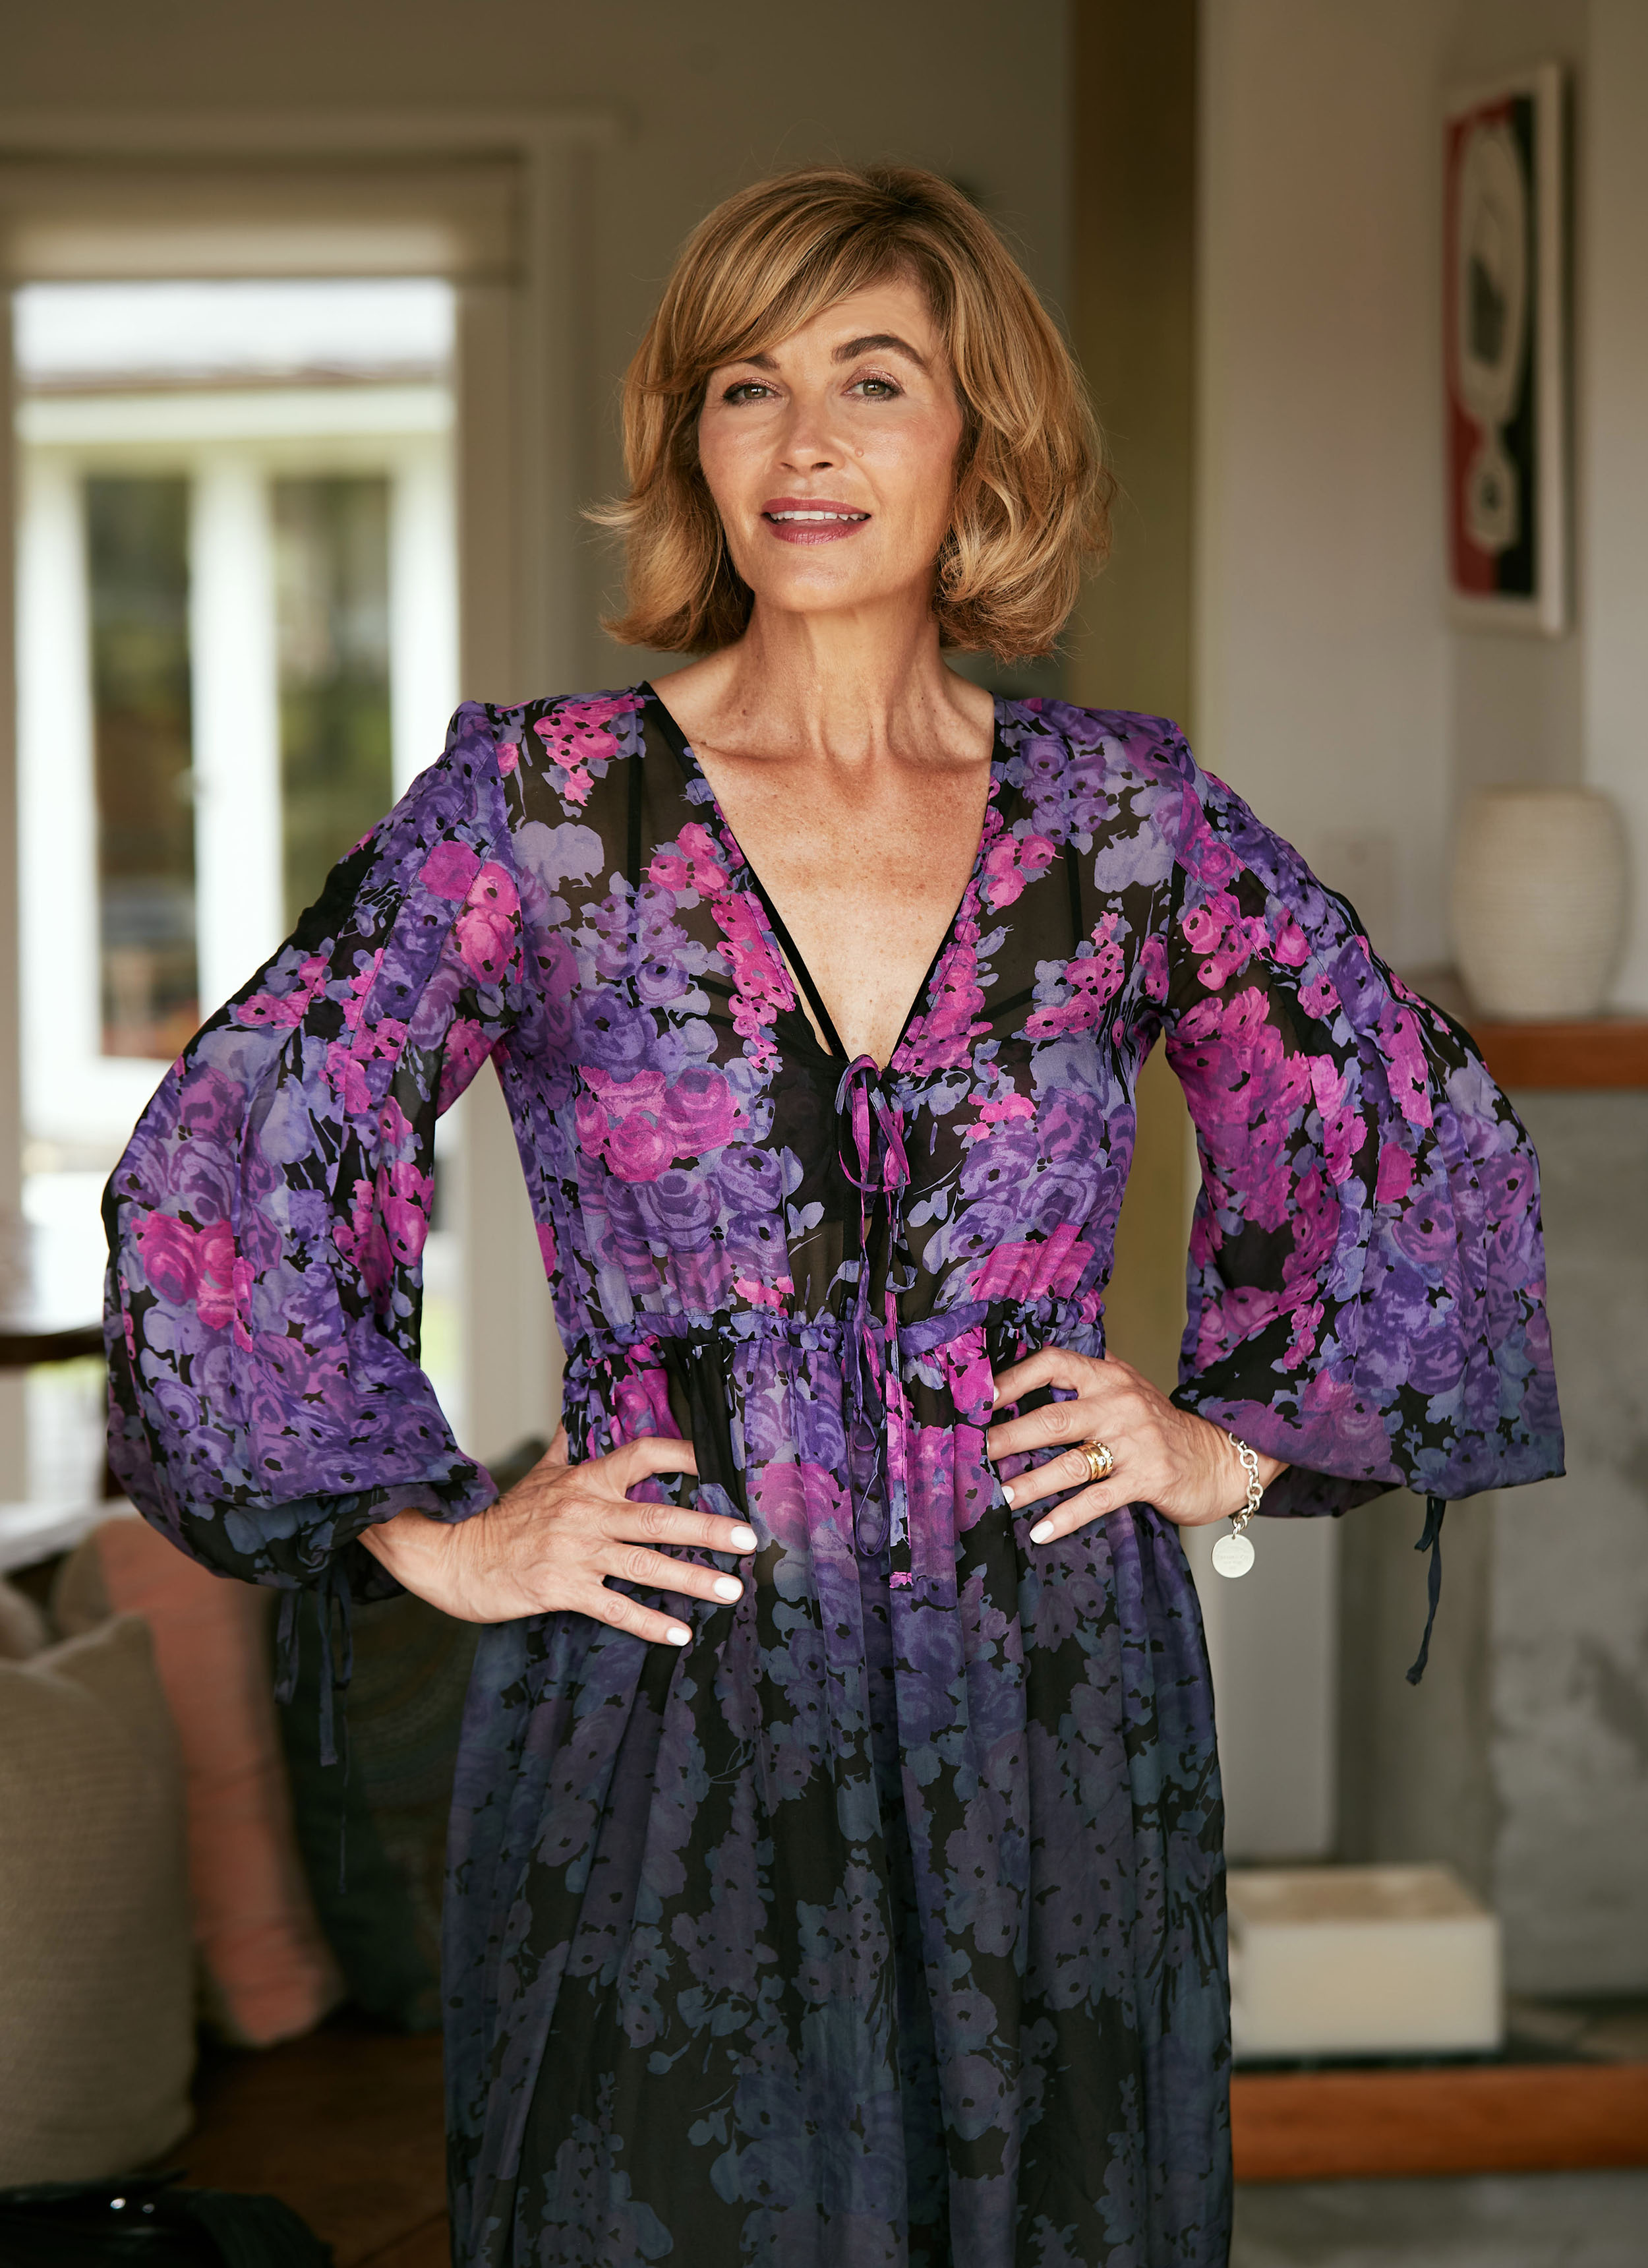 A blonde woman wearing a pink and purple floral dress with hands on hips